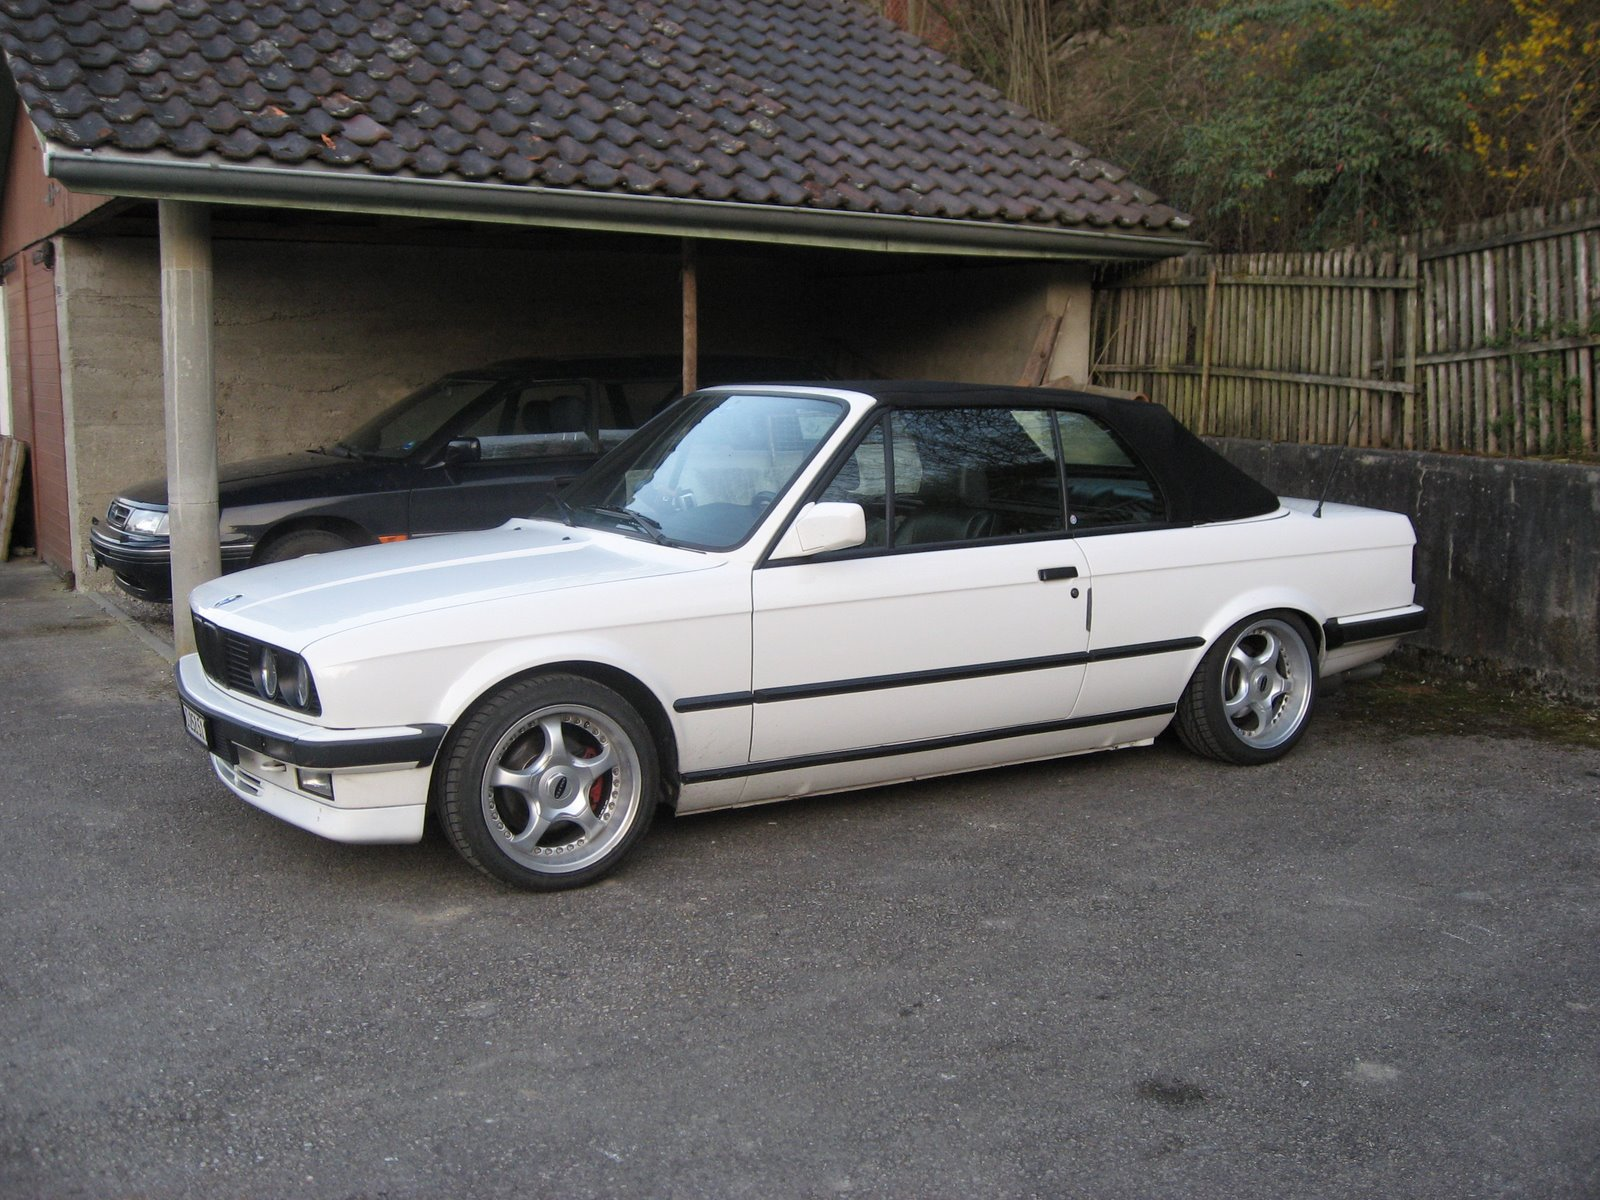 BMW 3 series 325ix 1989 photo - 5